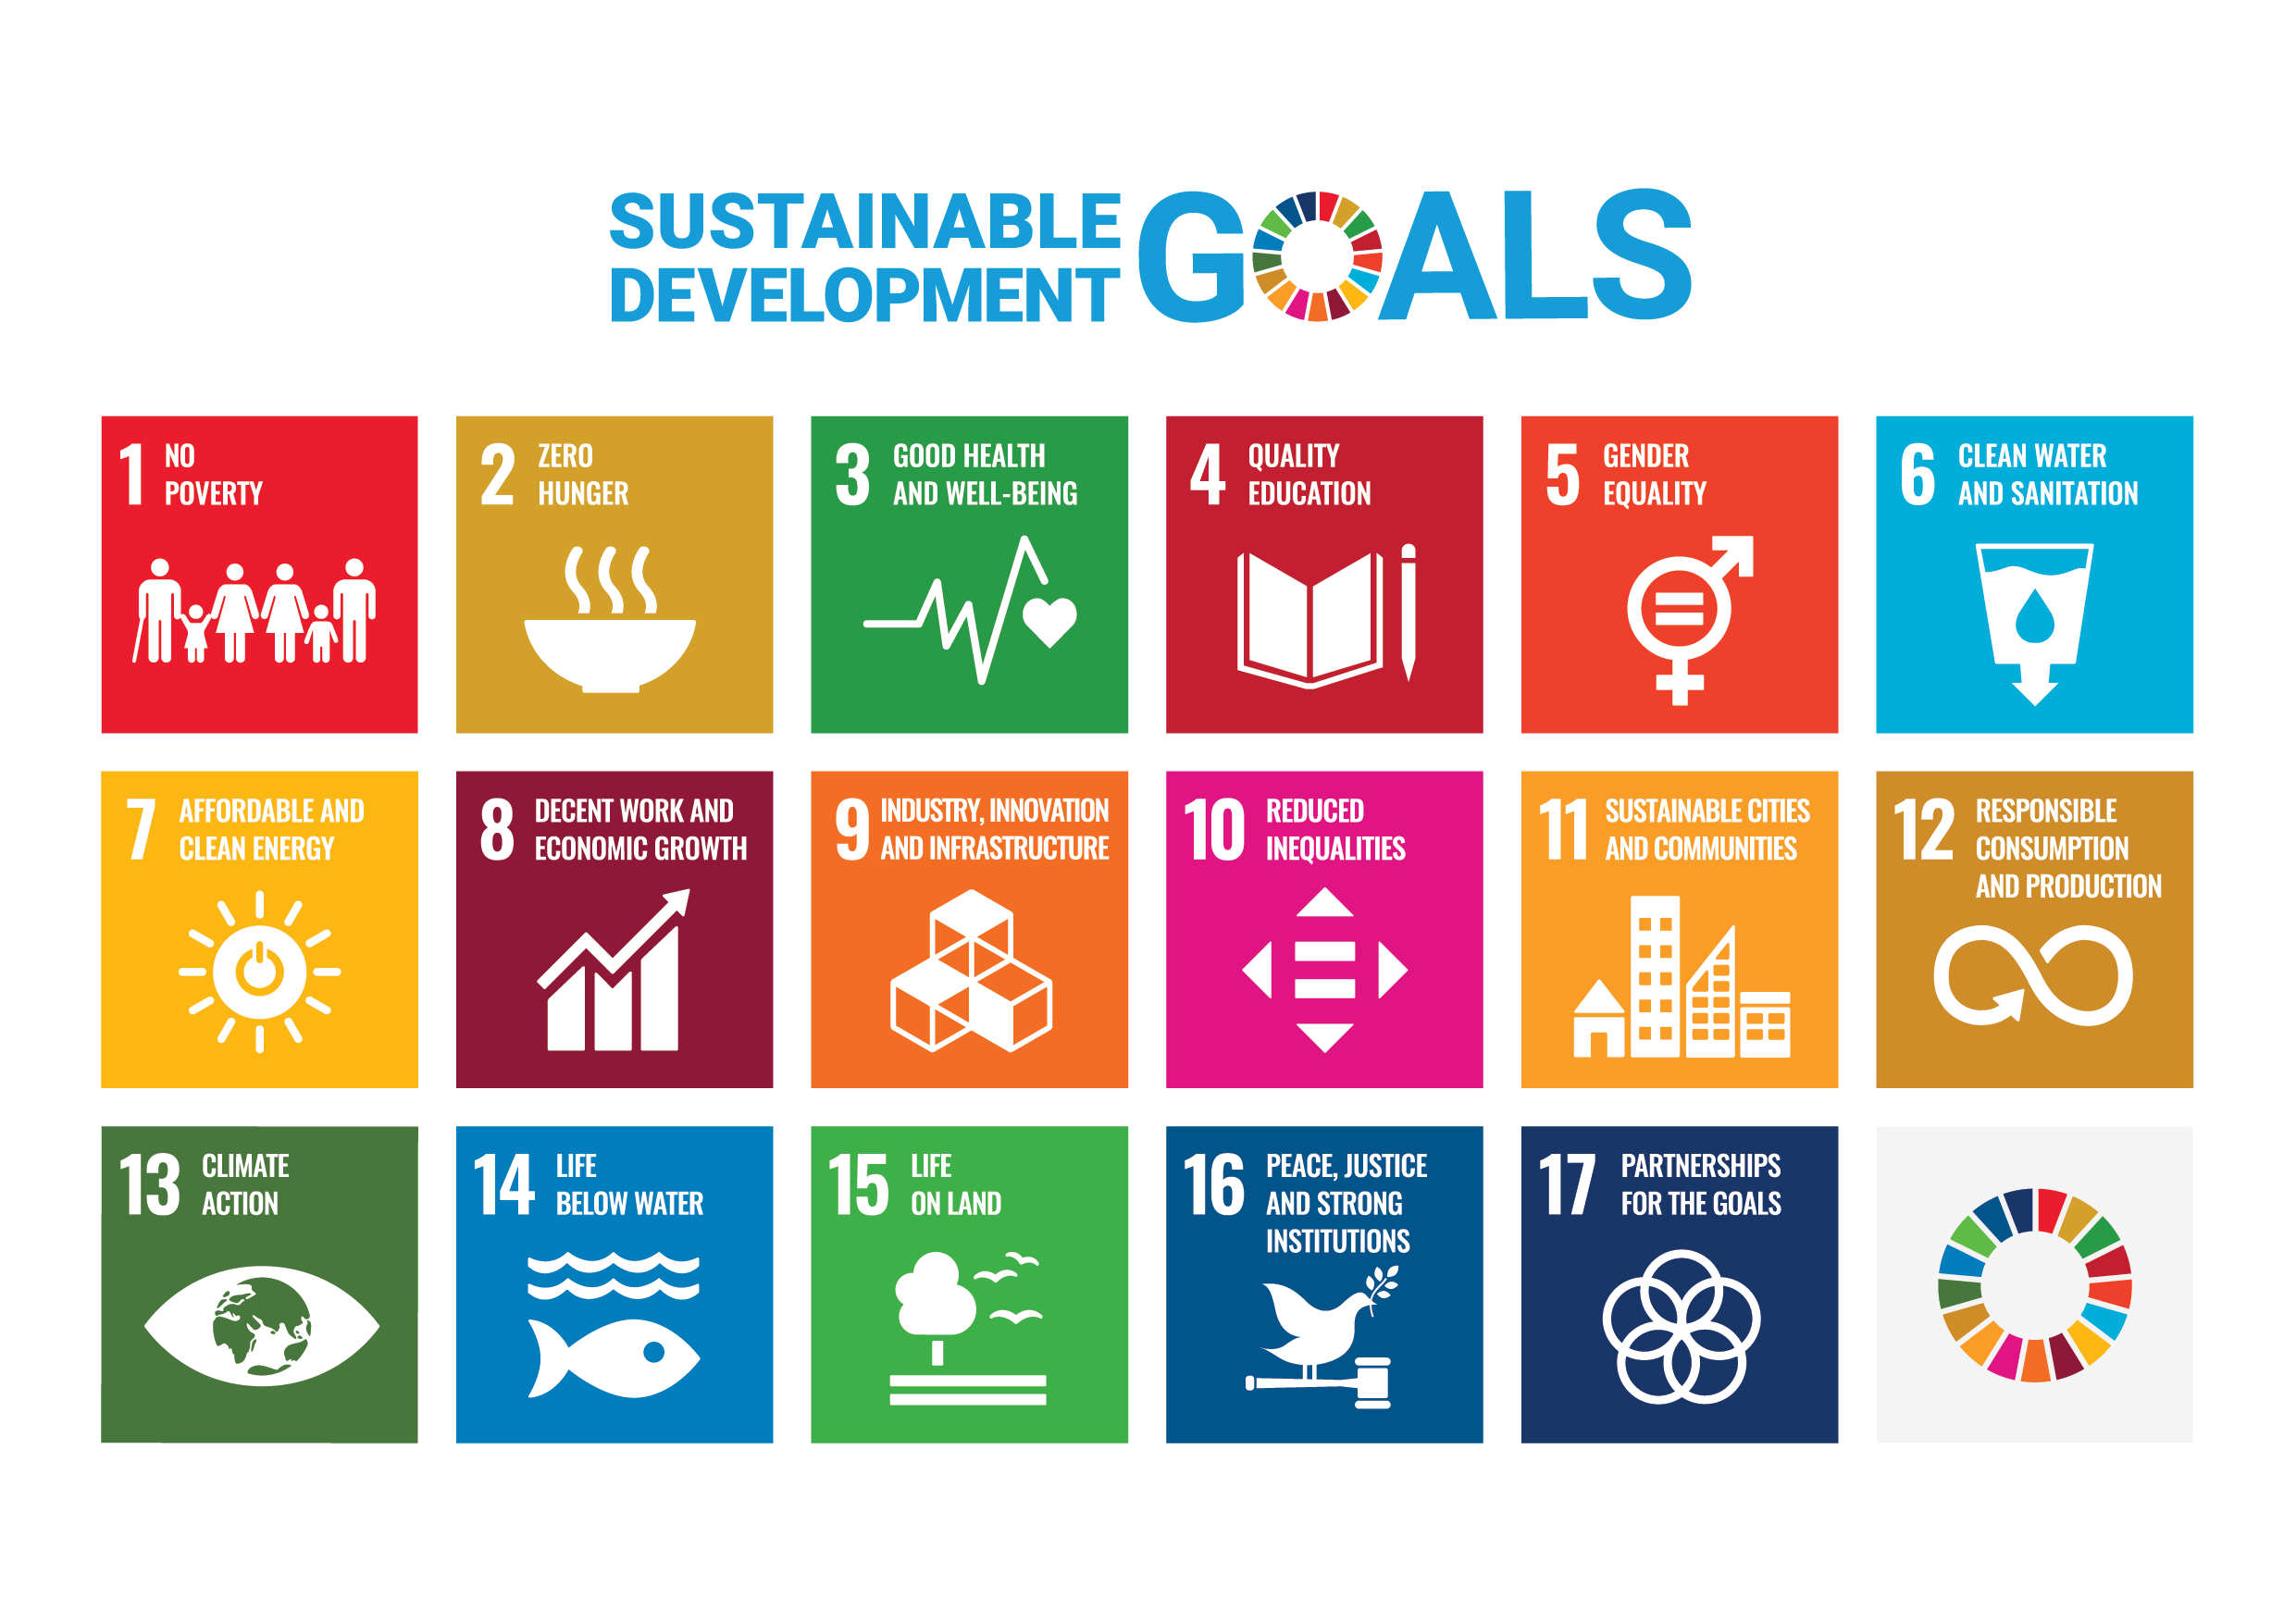 The UN Sustainable Development Goals should be aligned to tourism